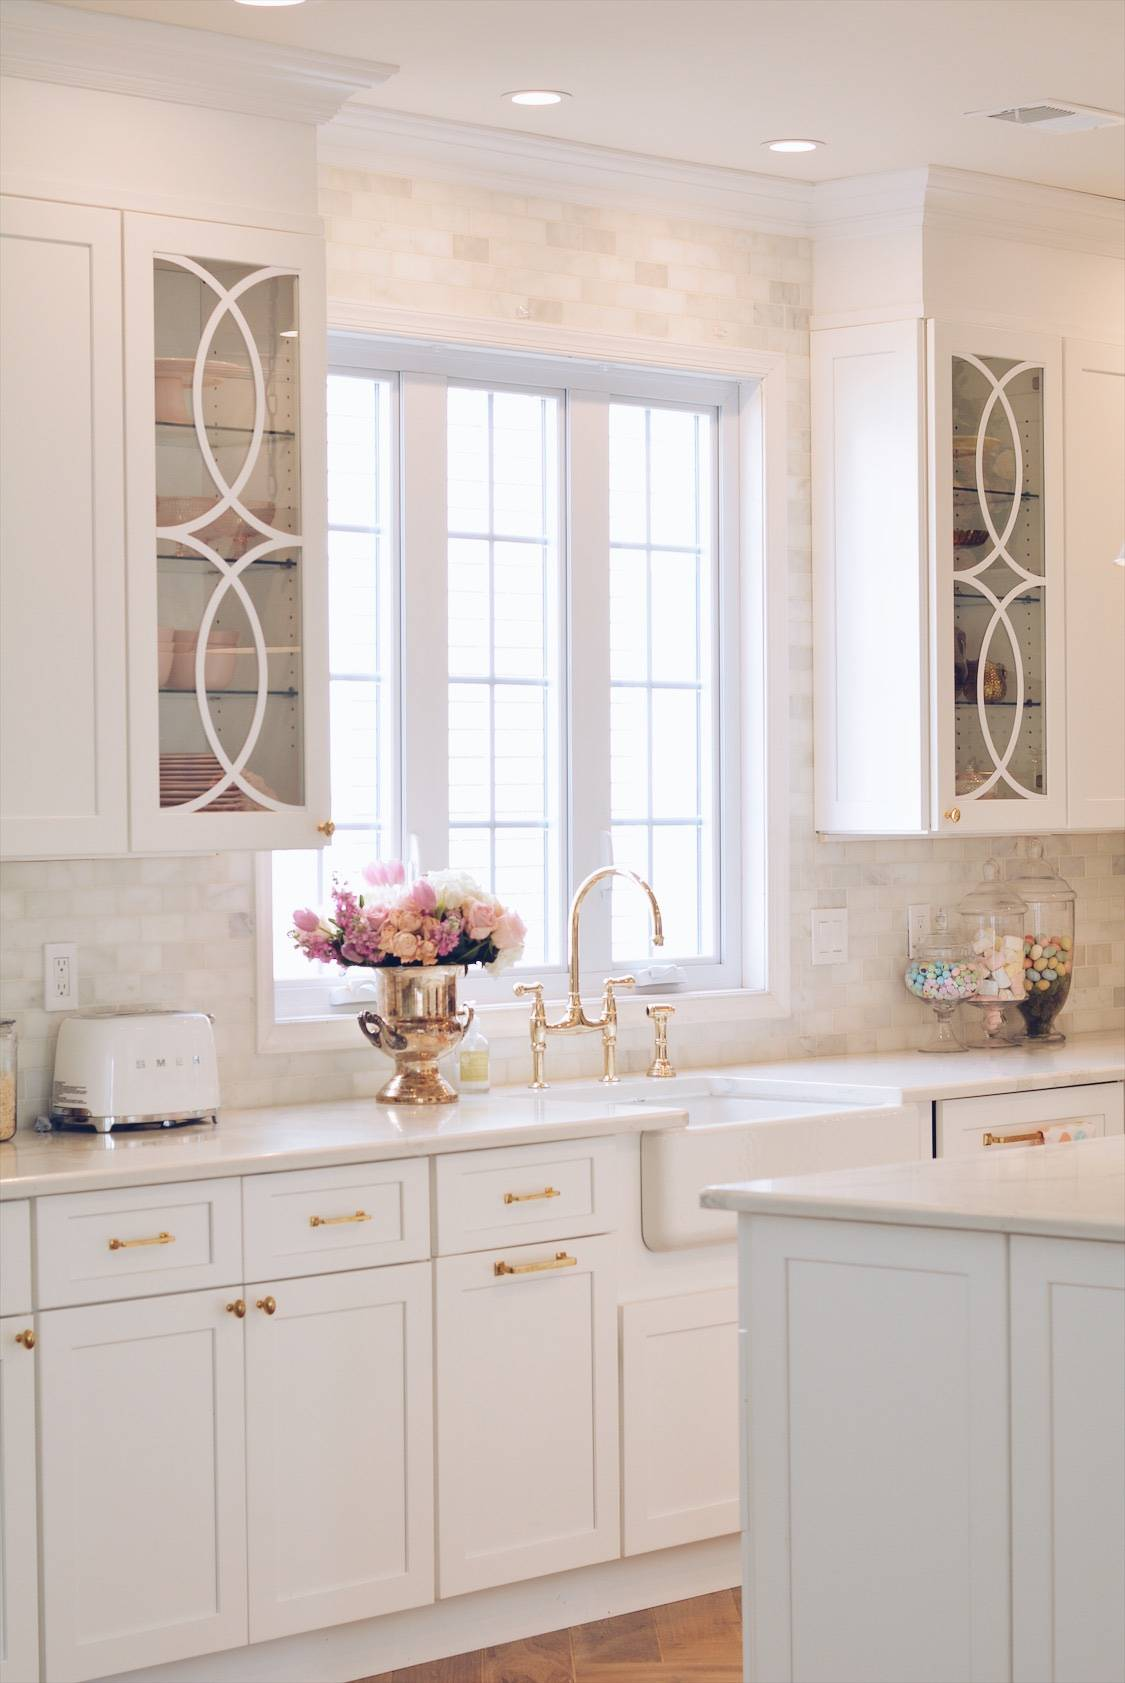 How To Order Cabinet Doors For Kitchen